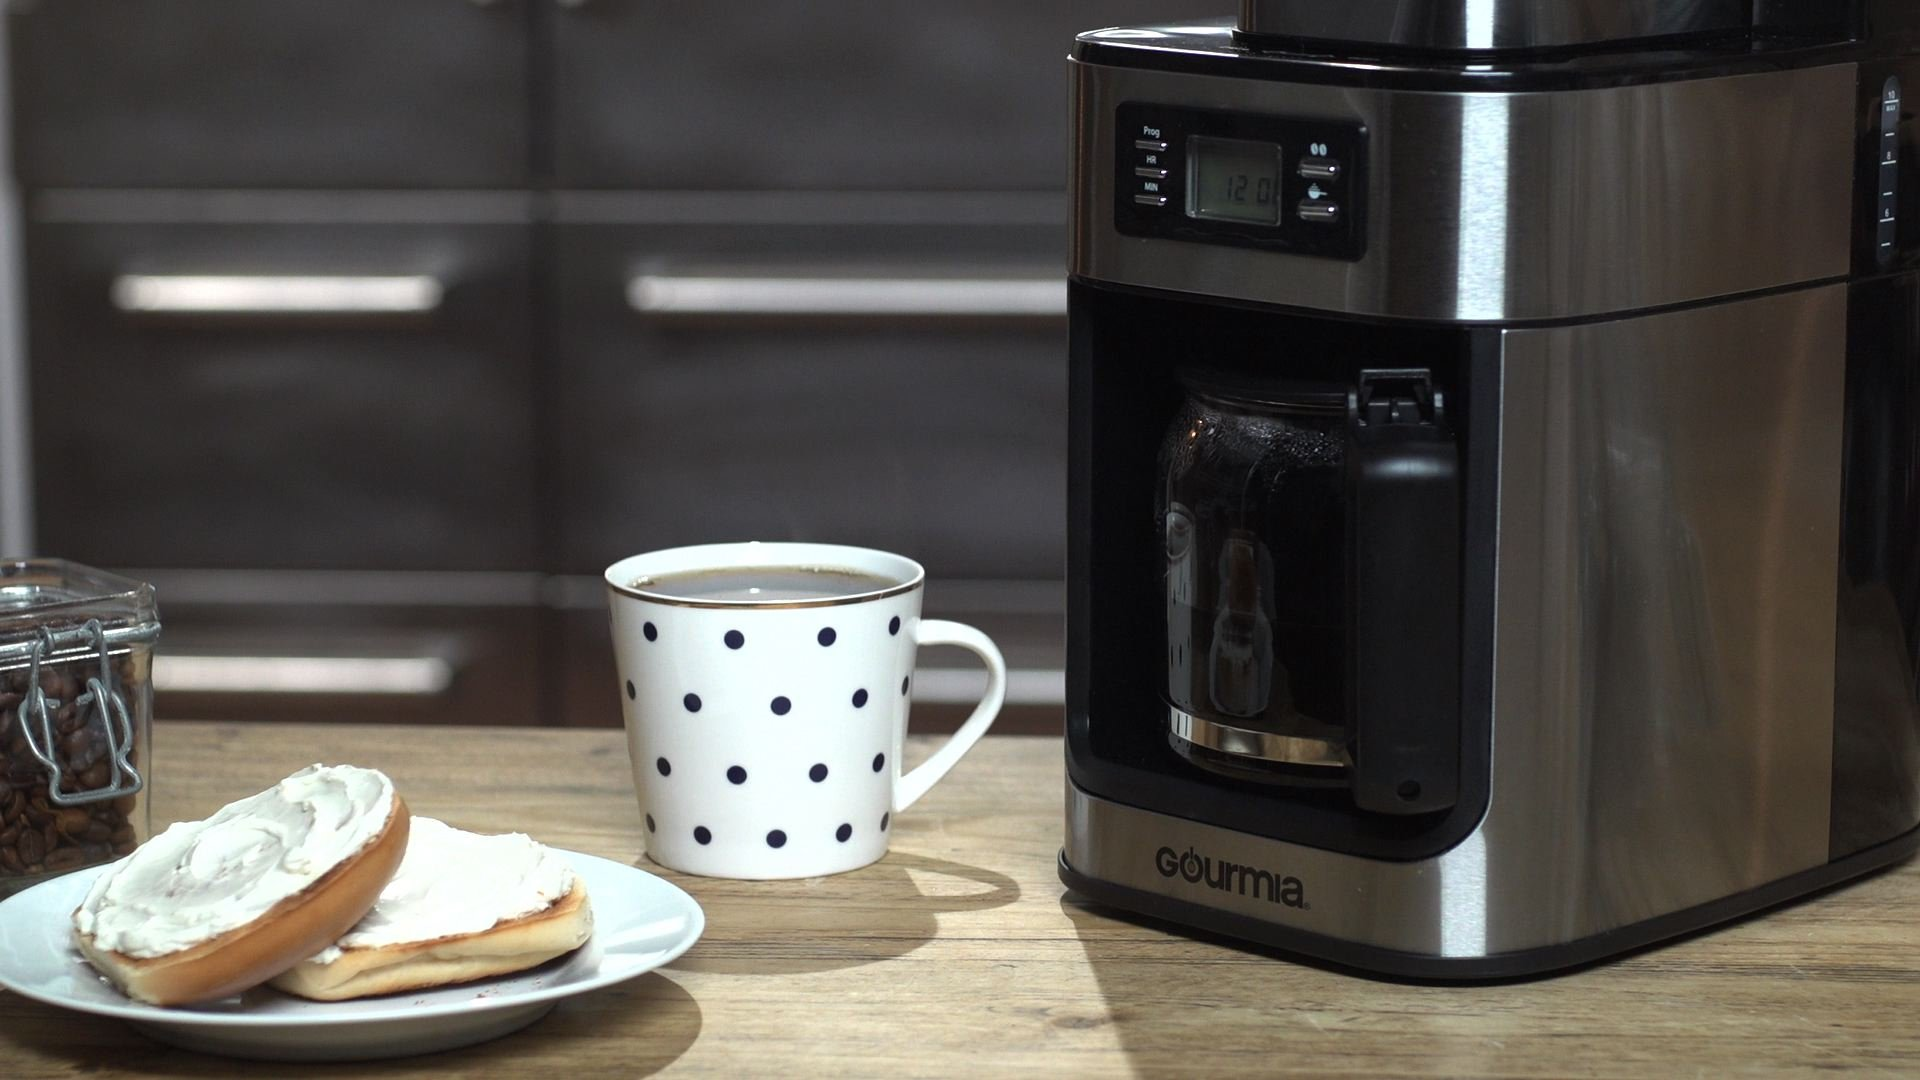 Gourmia GCM4500 Coffee Maker with Built In Coffee Grinder - Time Programmable - 10 Cup Capability - Automatic Drip - Glass Carafe - LED Display - ETL Certified by Gourmia (Image #5)